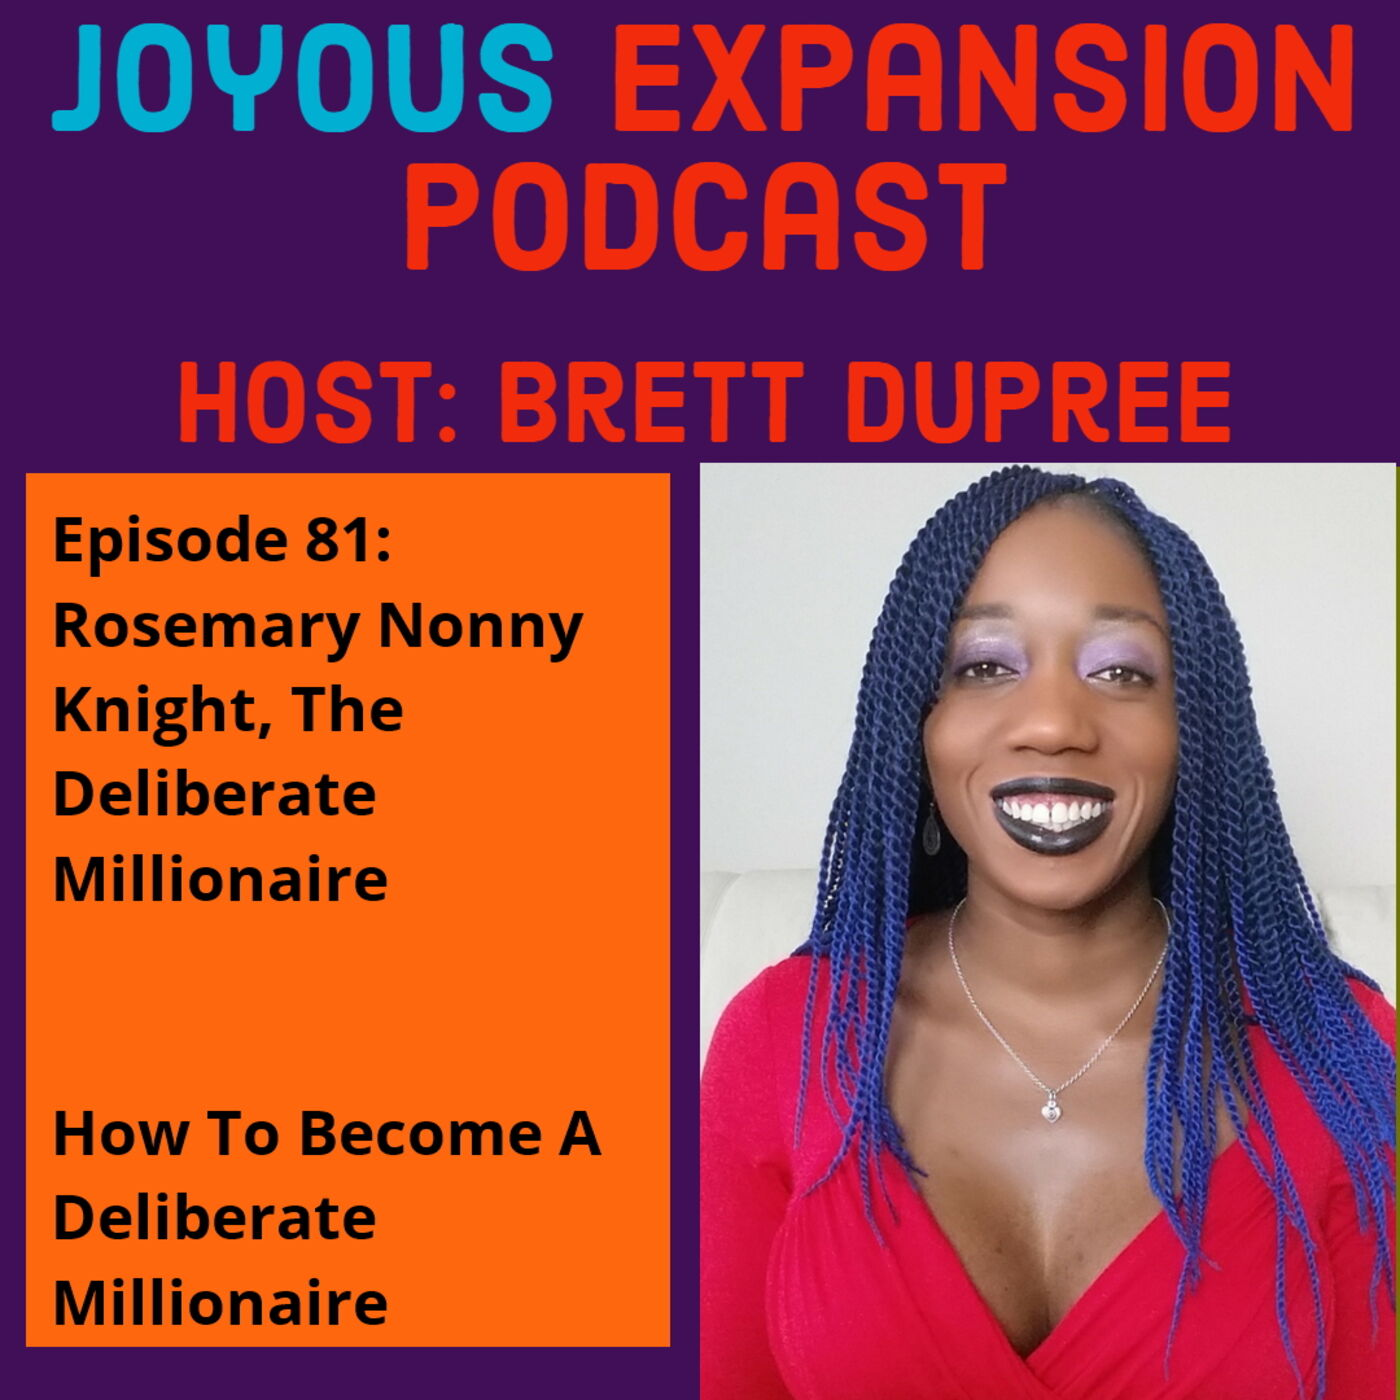 Joyous Expansion #81 - Rosemary Nonny Knight - How To Become A  Deliberate  Millionaire